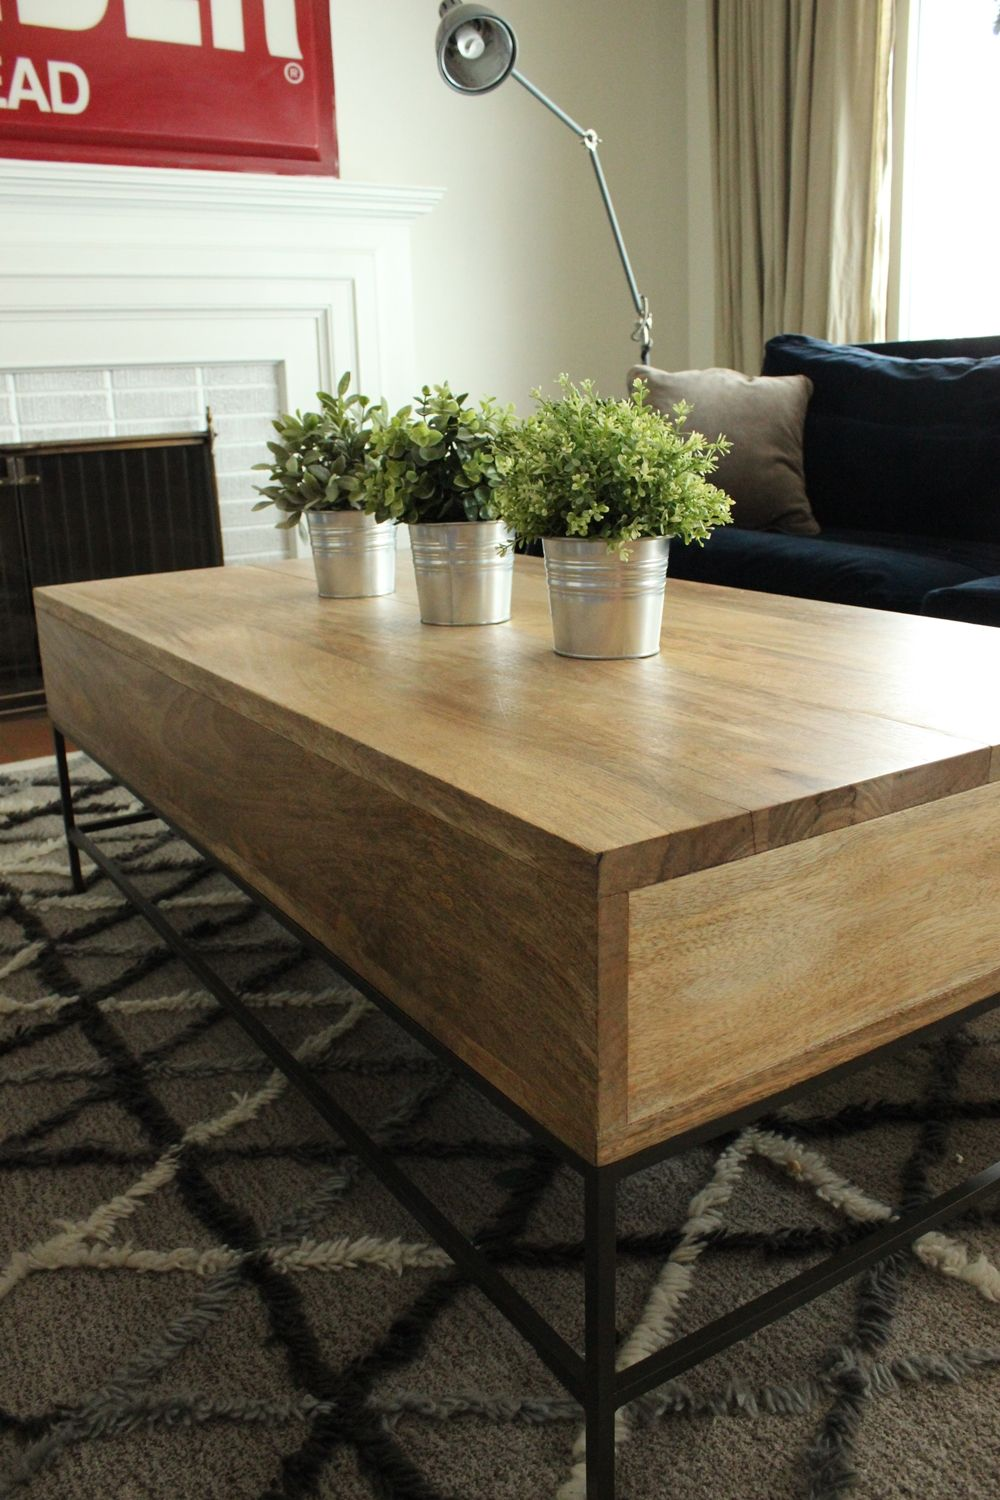 Organi plants to style a coffee table